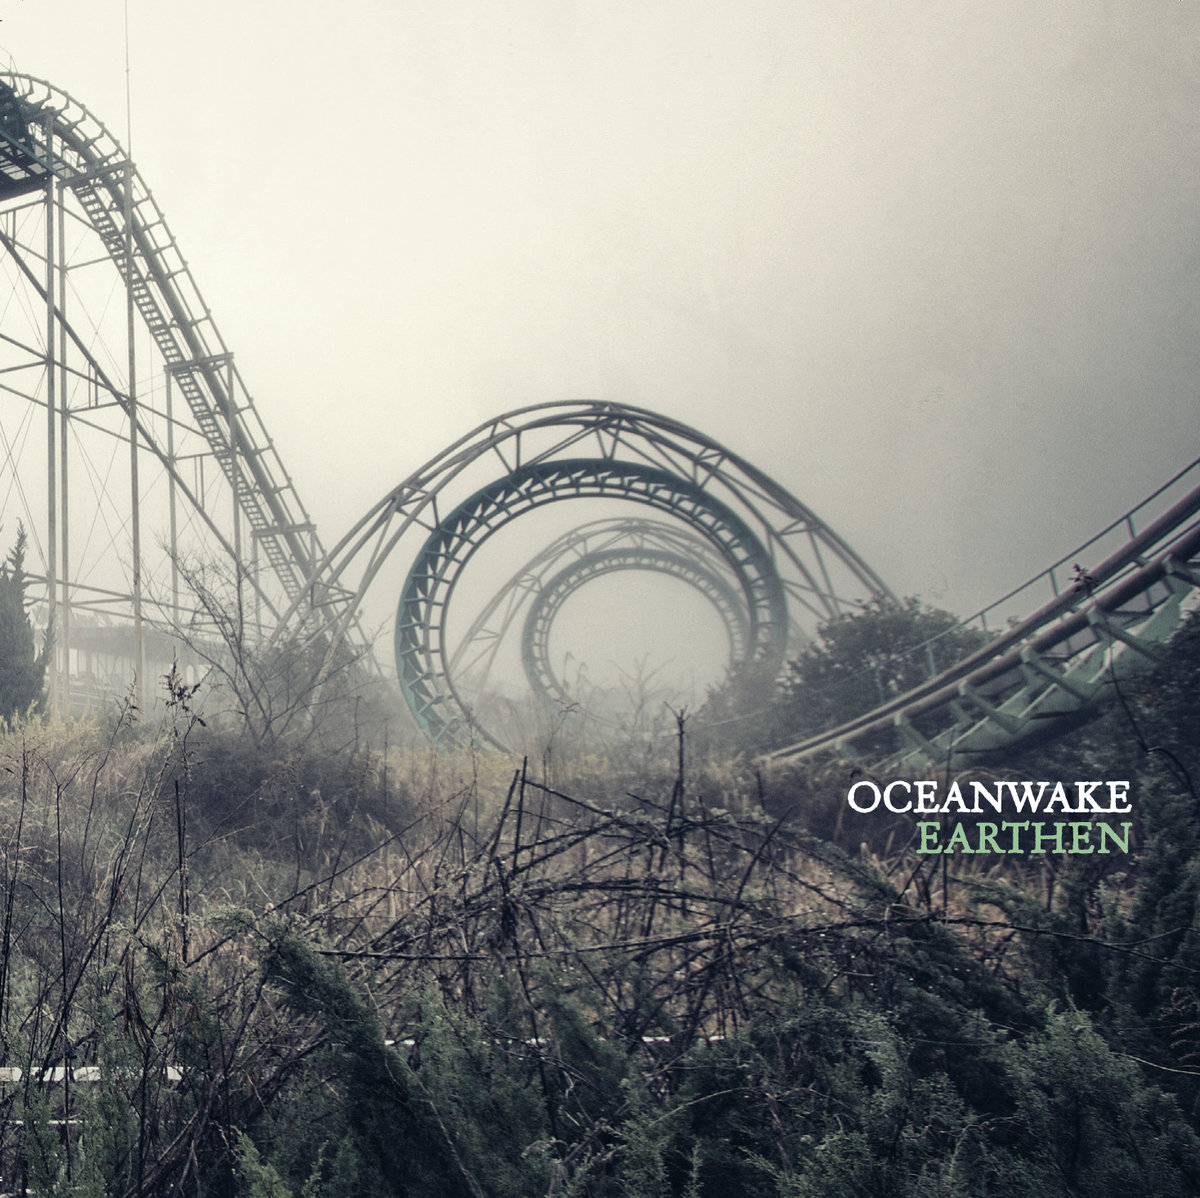 oceanwake-earthen-chris-luckhardt